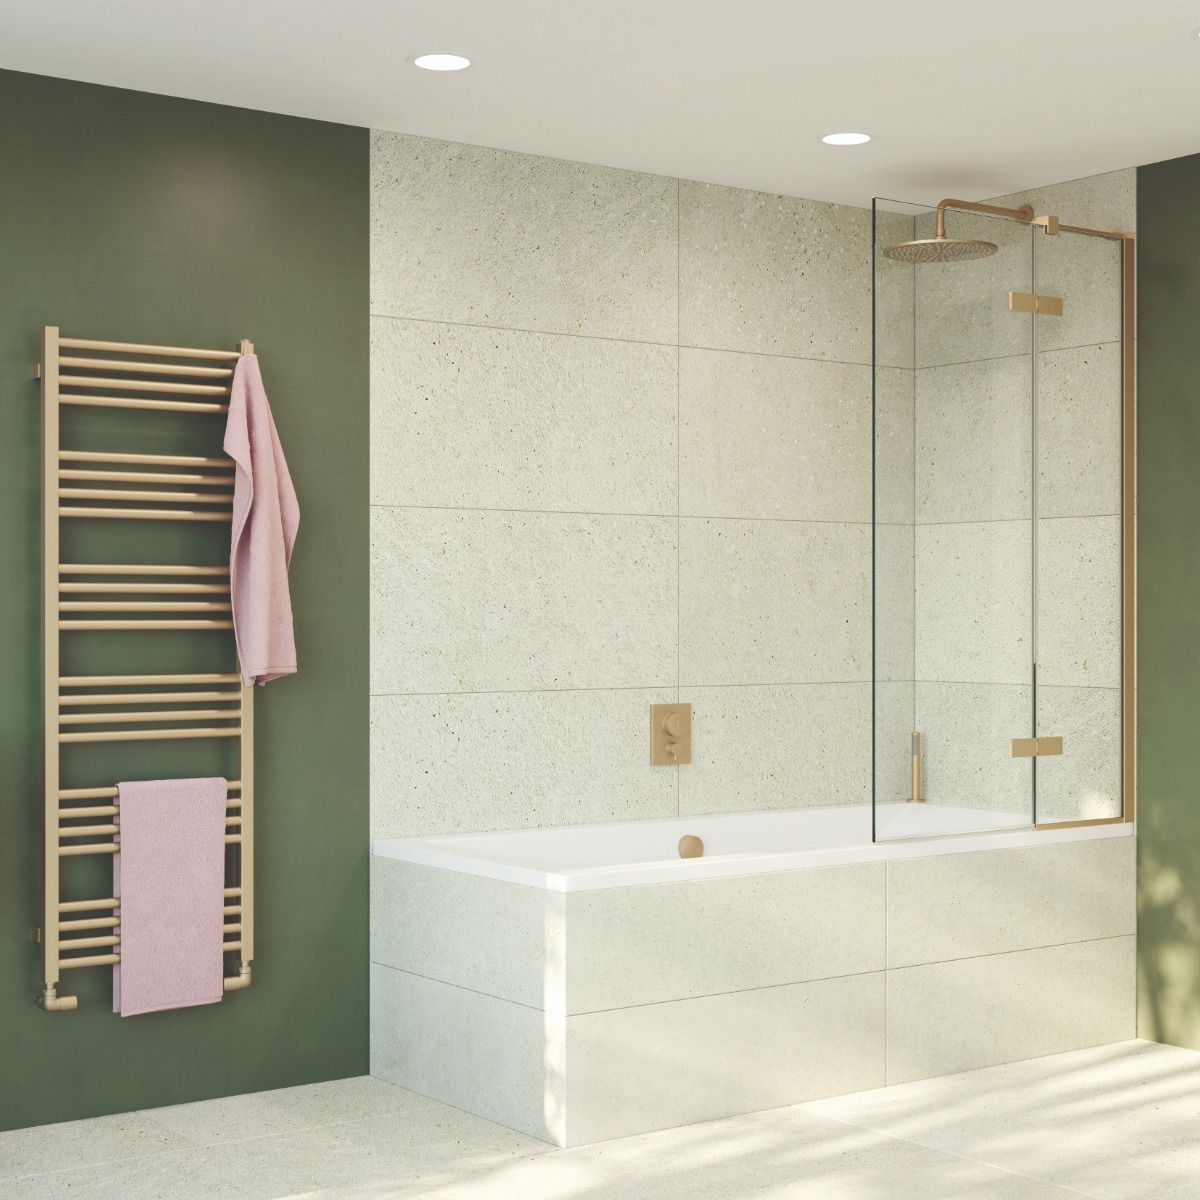 Crosswater Optix 10 Brushed Brass Bath Shower Screen with Inline Panel - OXBDFC0900